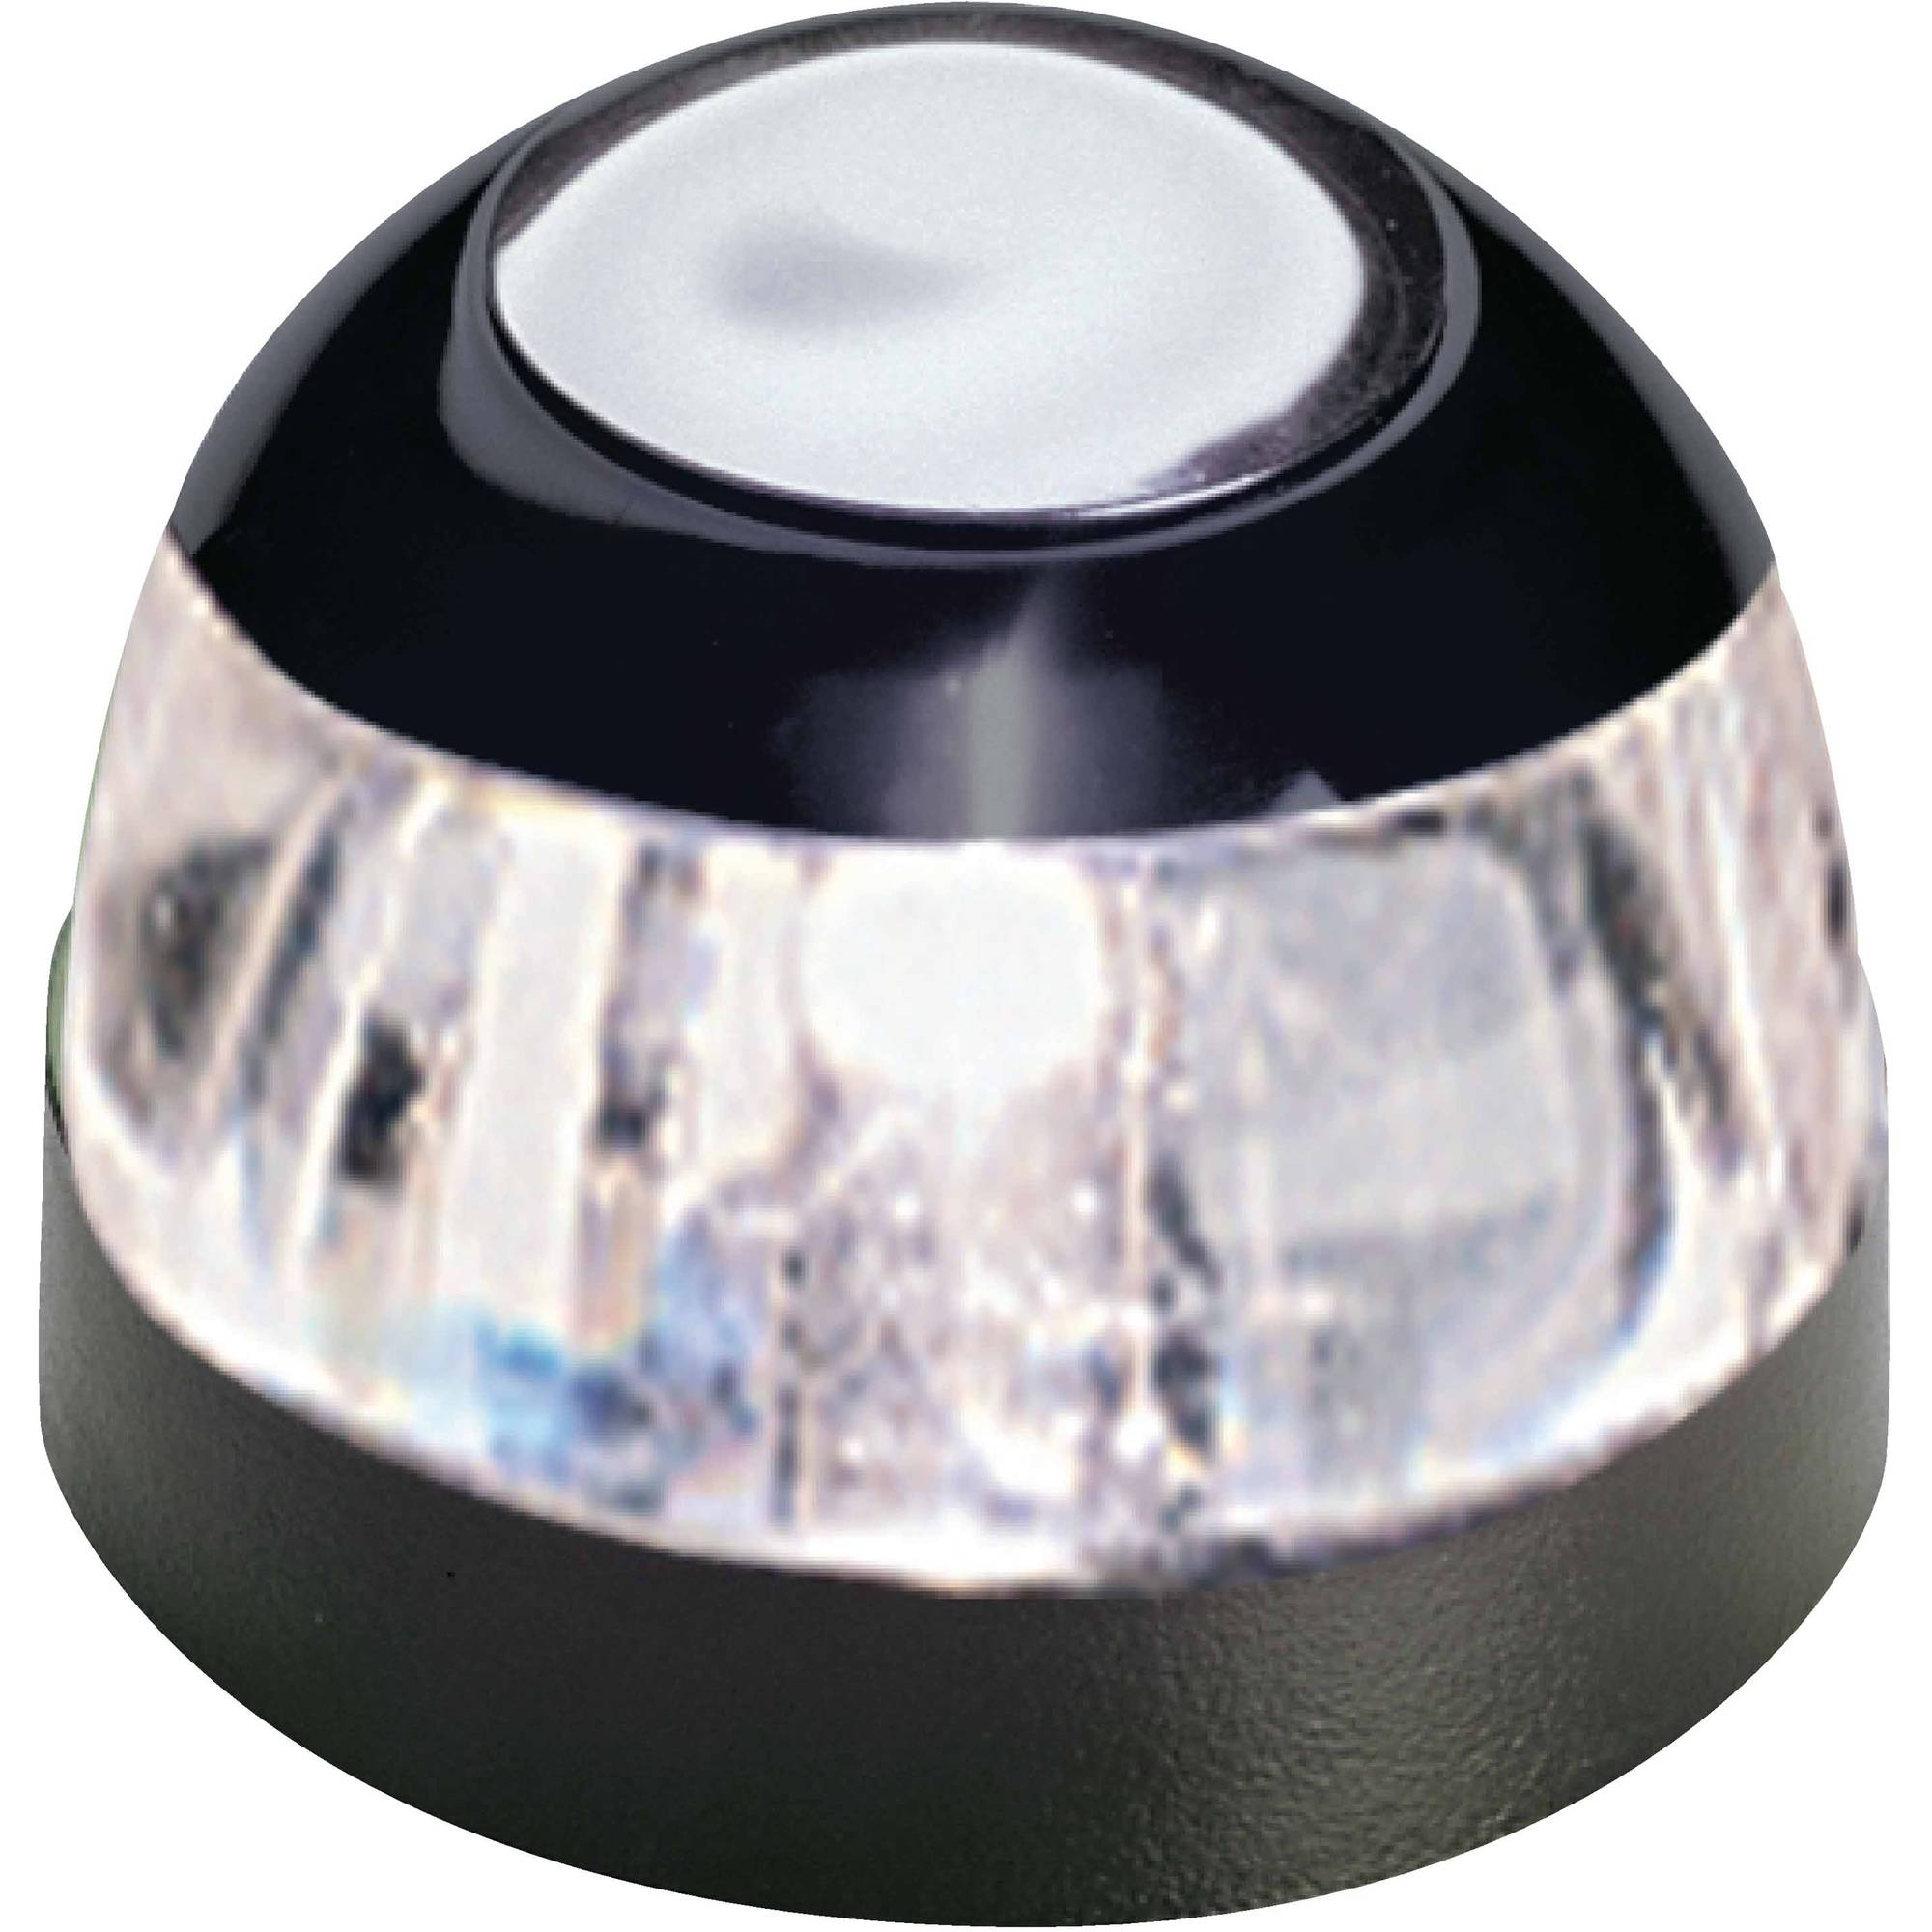 Aqua Signal 22000 Series 22 12V Navigation Light for Power Boats Up to 39', All-Round Deck Mount, Black